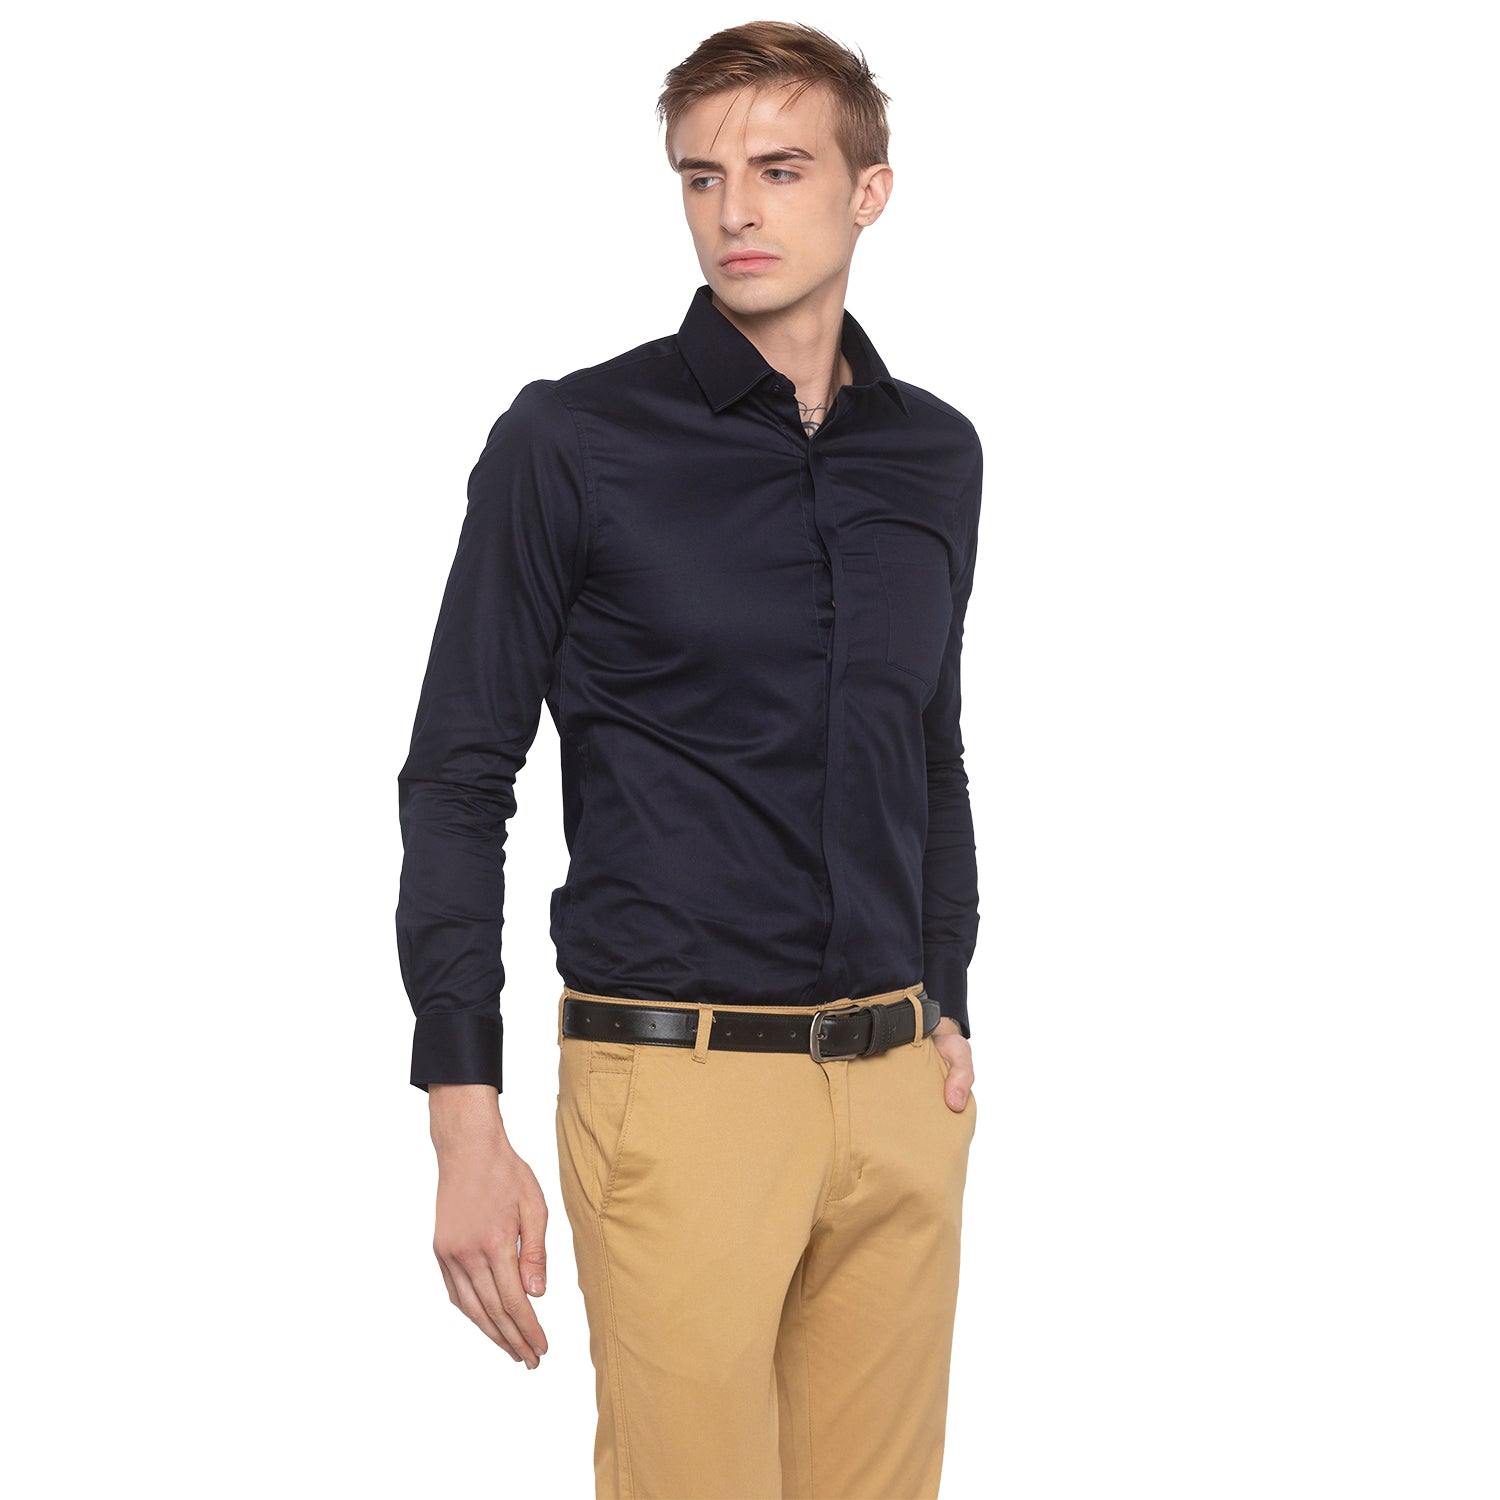 Solid Navy Blue Smart Casual Shirt-1